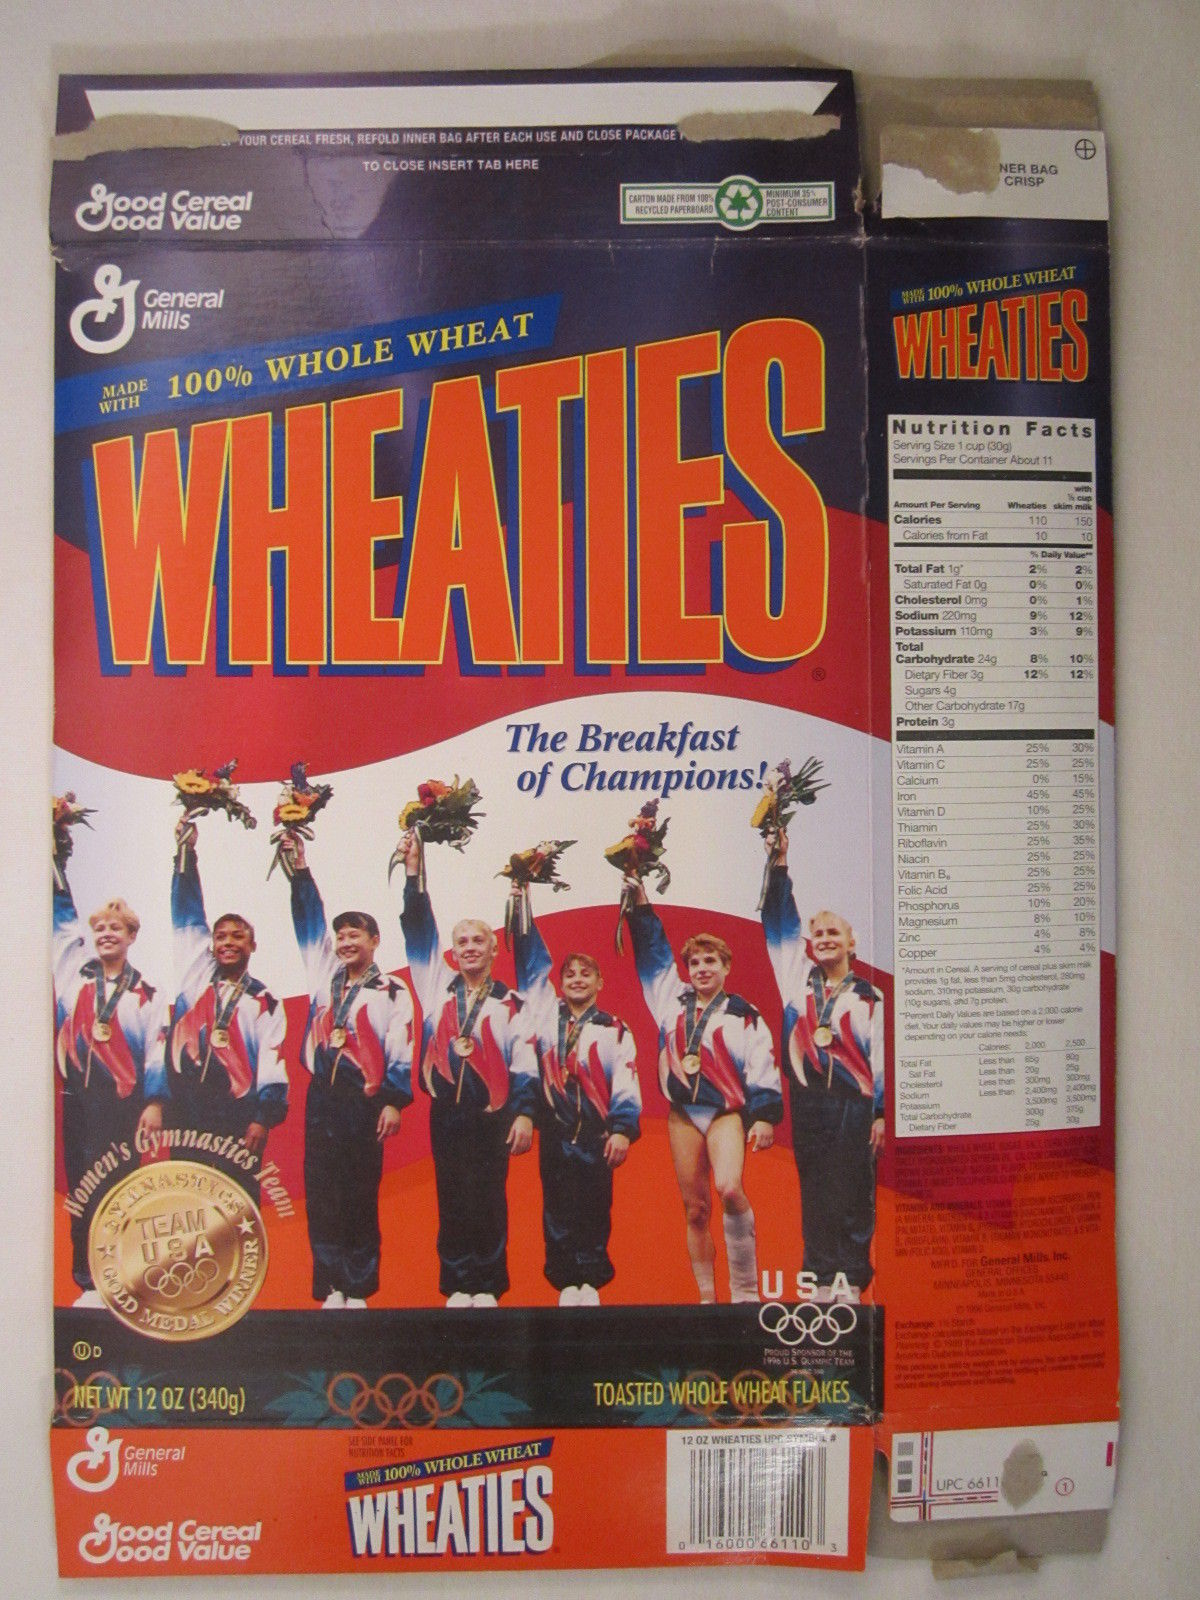 Primary image for MT WHEATIES Cereal Box 1996 12oz USA OLYMPIC TEAM Women's Gymnastics [G7E13a]